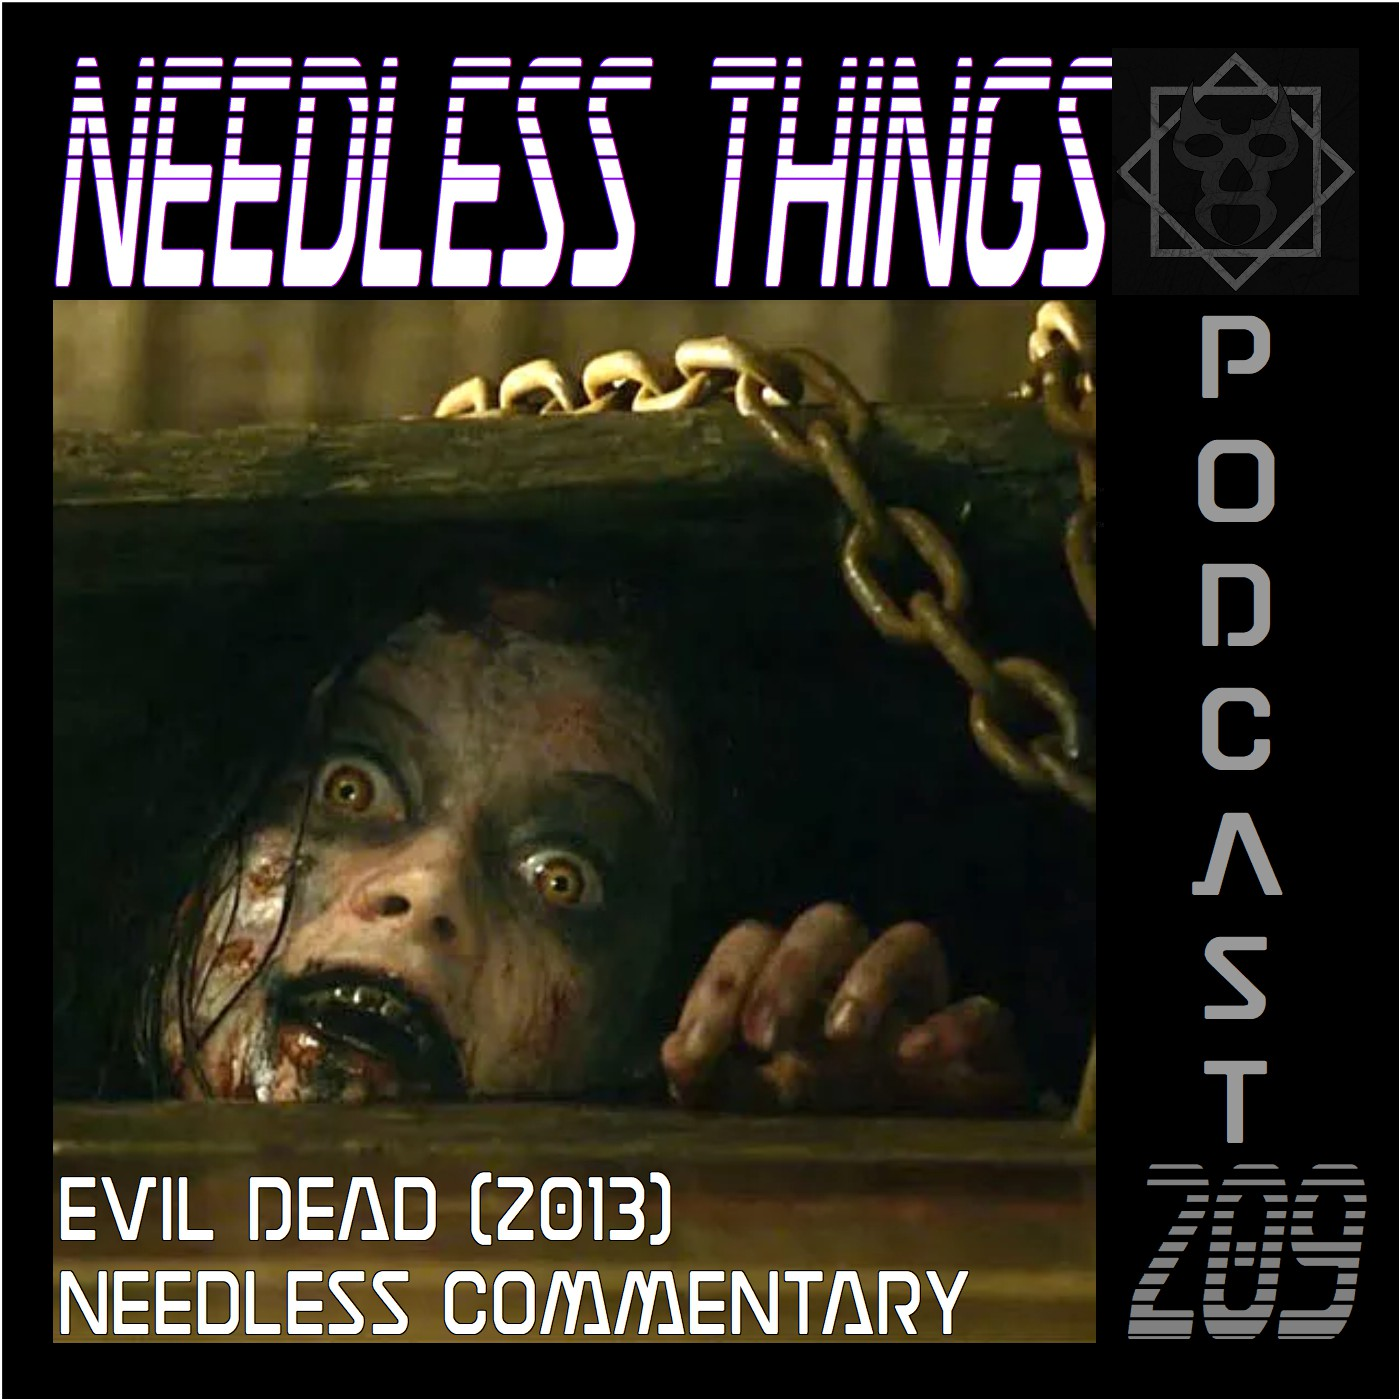 Needless Things Podcast 209 – Evil Dead (2013) Needless Commentary